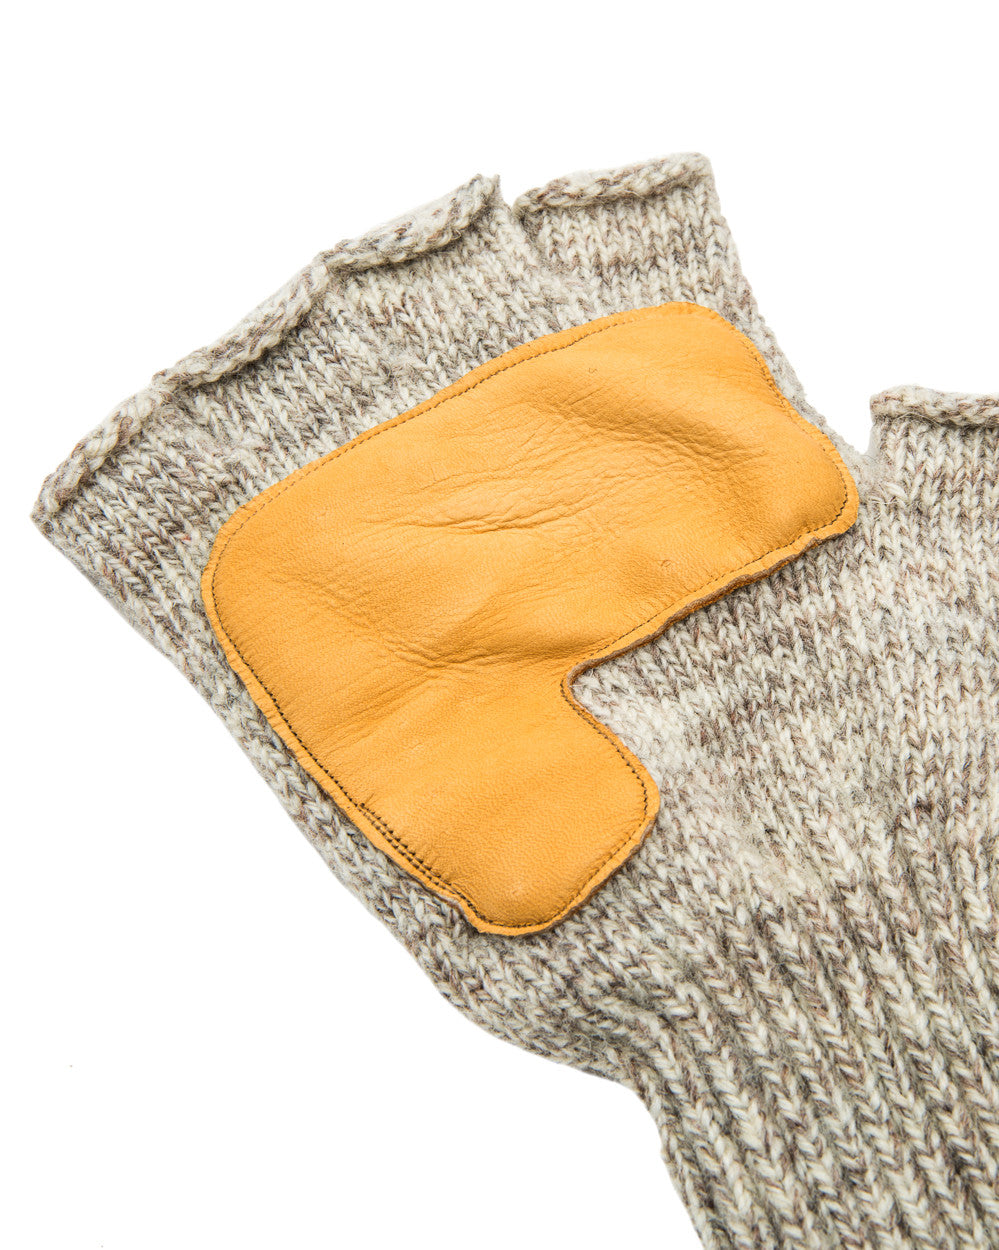 OATMEAL MELANGE FINGRLESS GLOVE WITH OATMEAL DEERSKIN